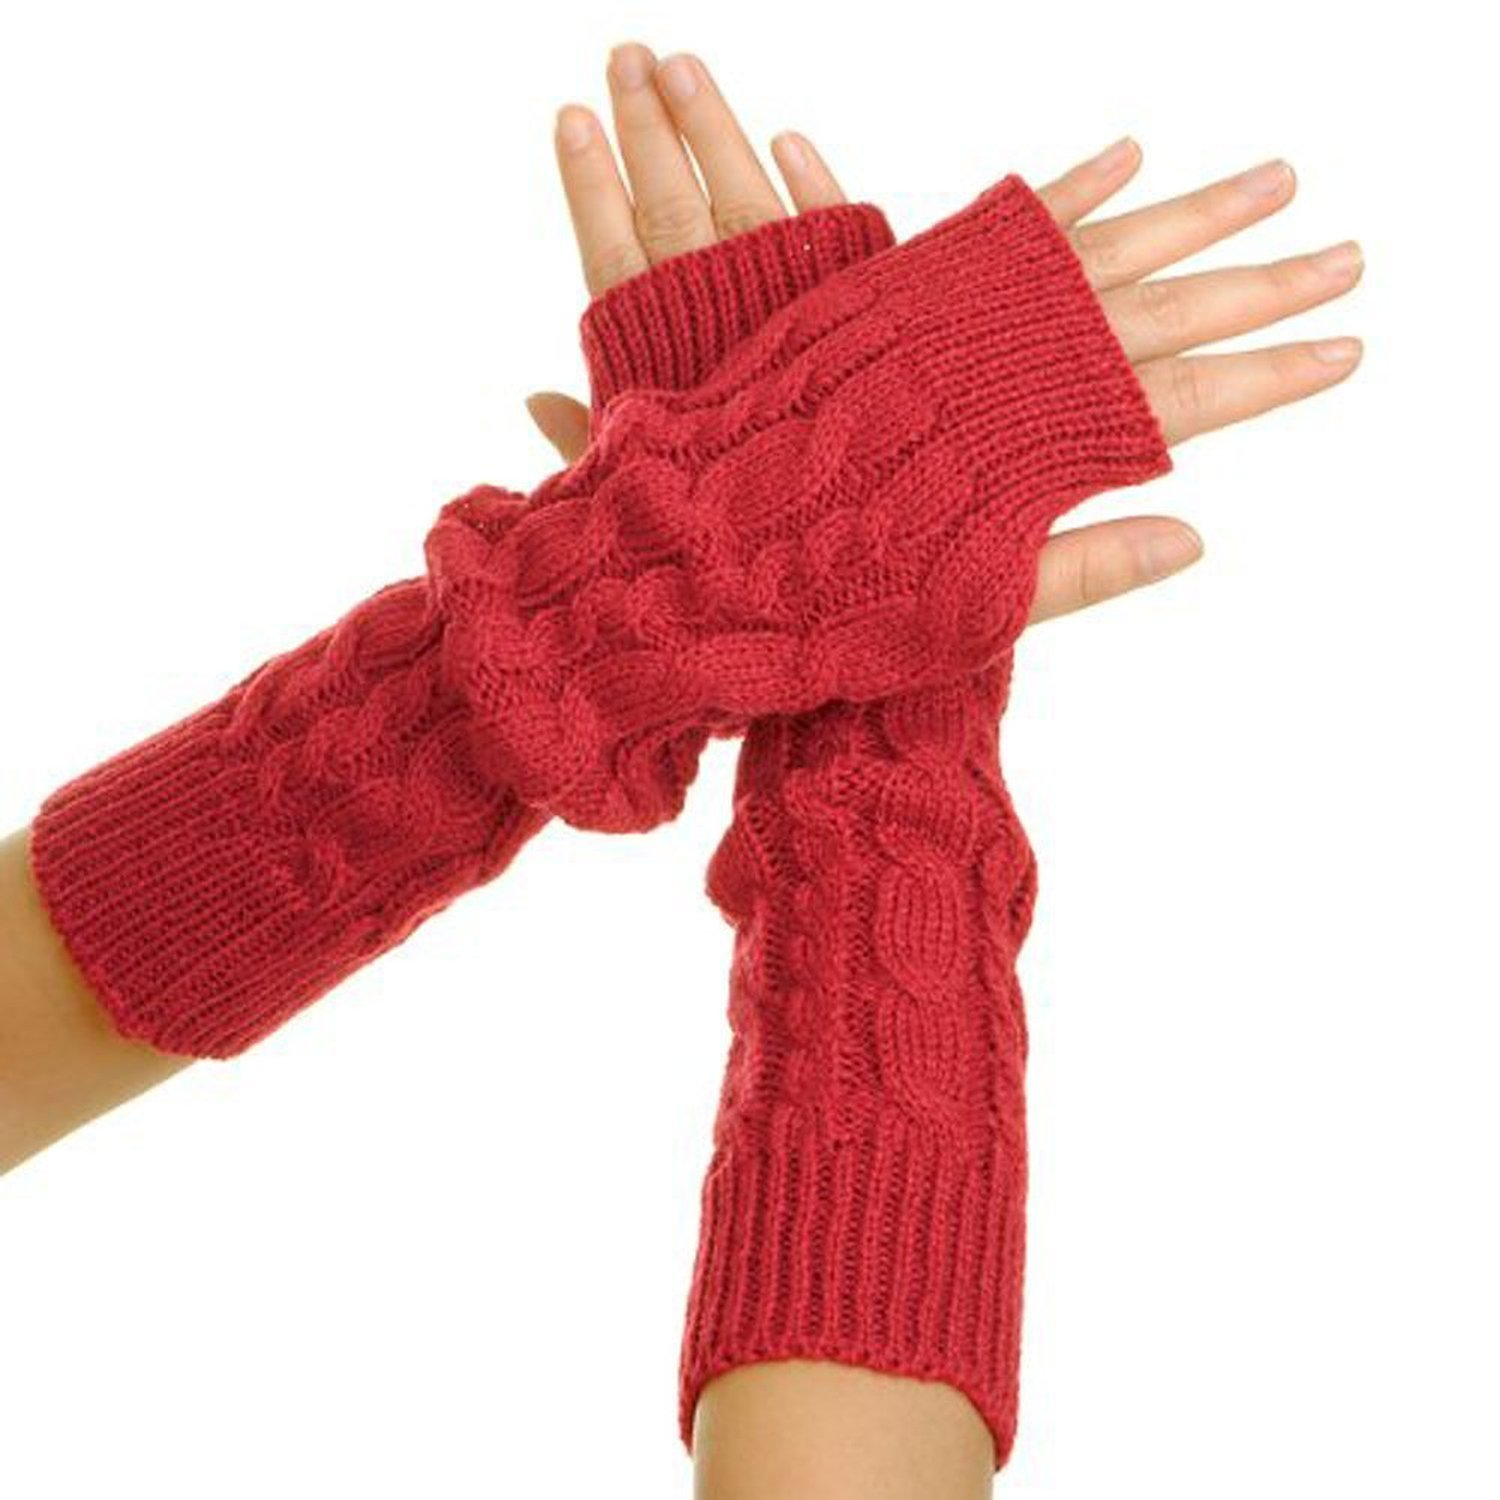 Cheap Knitted Gloves Winter Find Deals On Knit Hoodie Fingerless Maroon Get Quotations Funyye Stylish 1 Pair Women Lady Girl Crochet Long Soft Warmer Braided Wrist